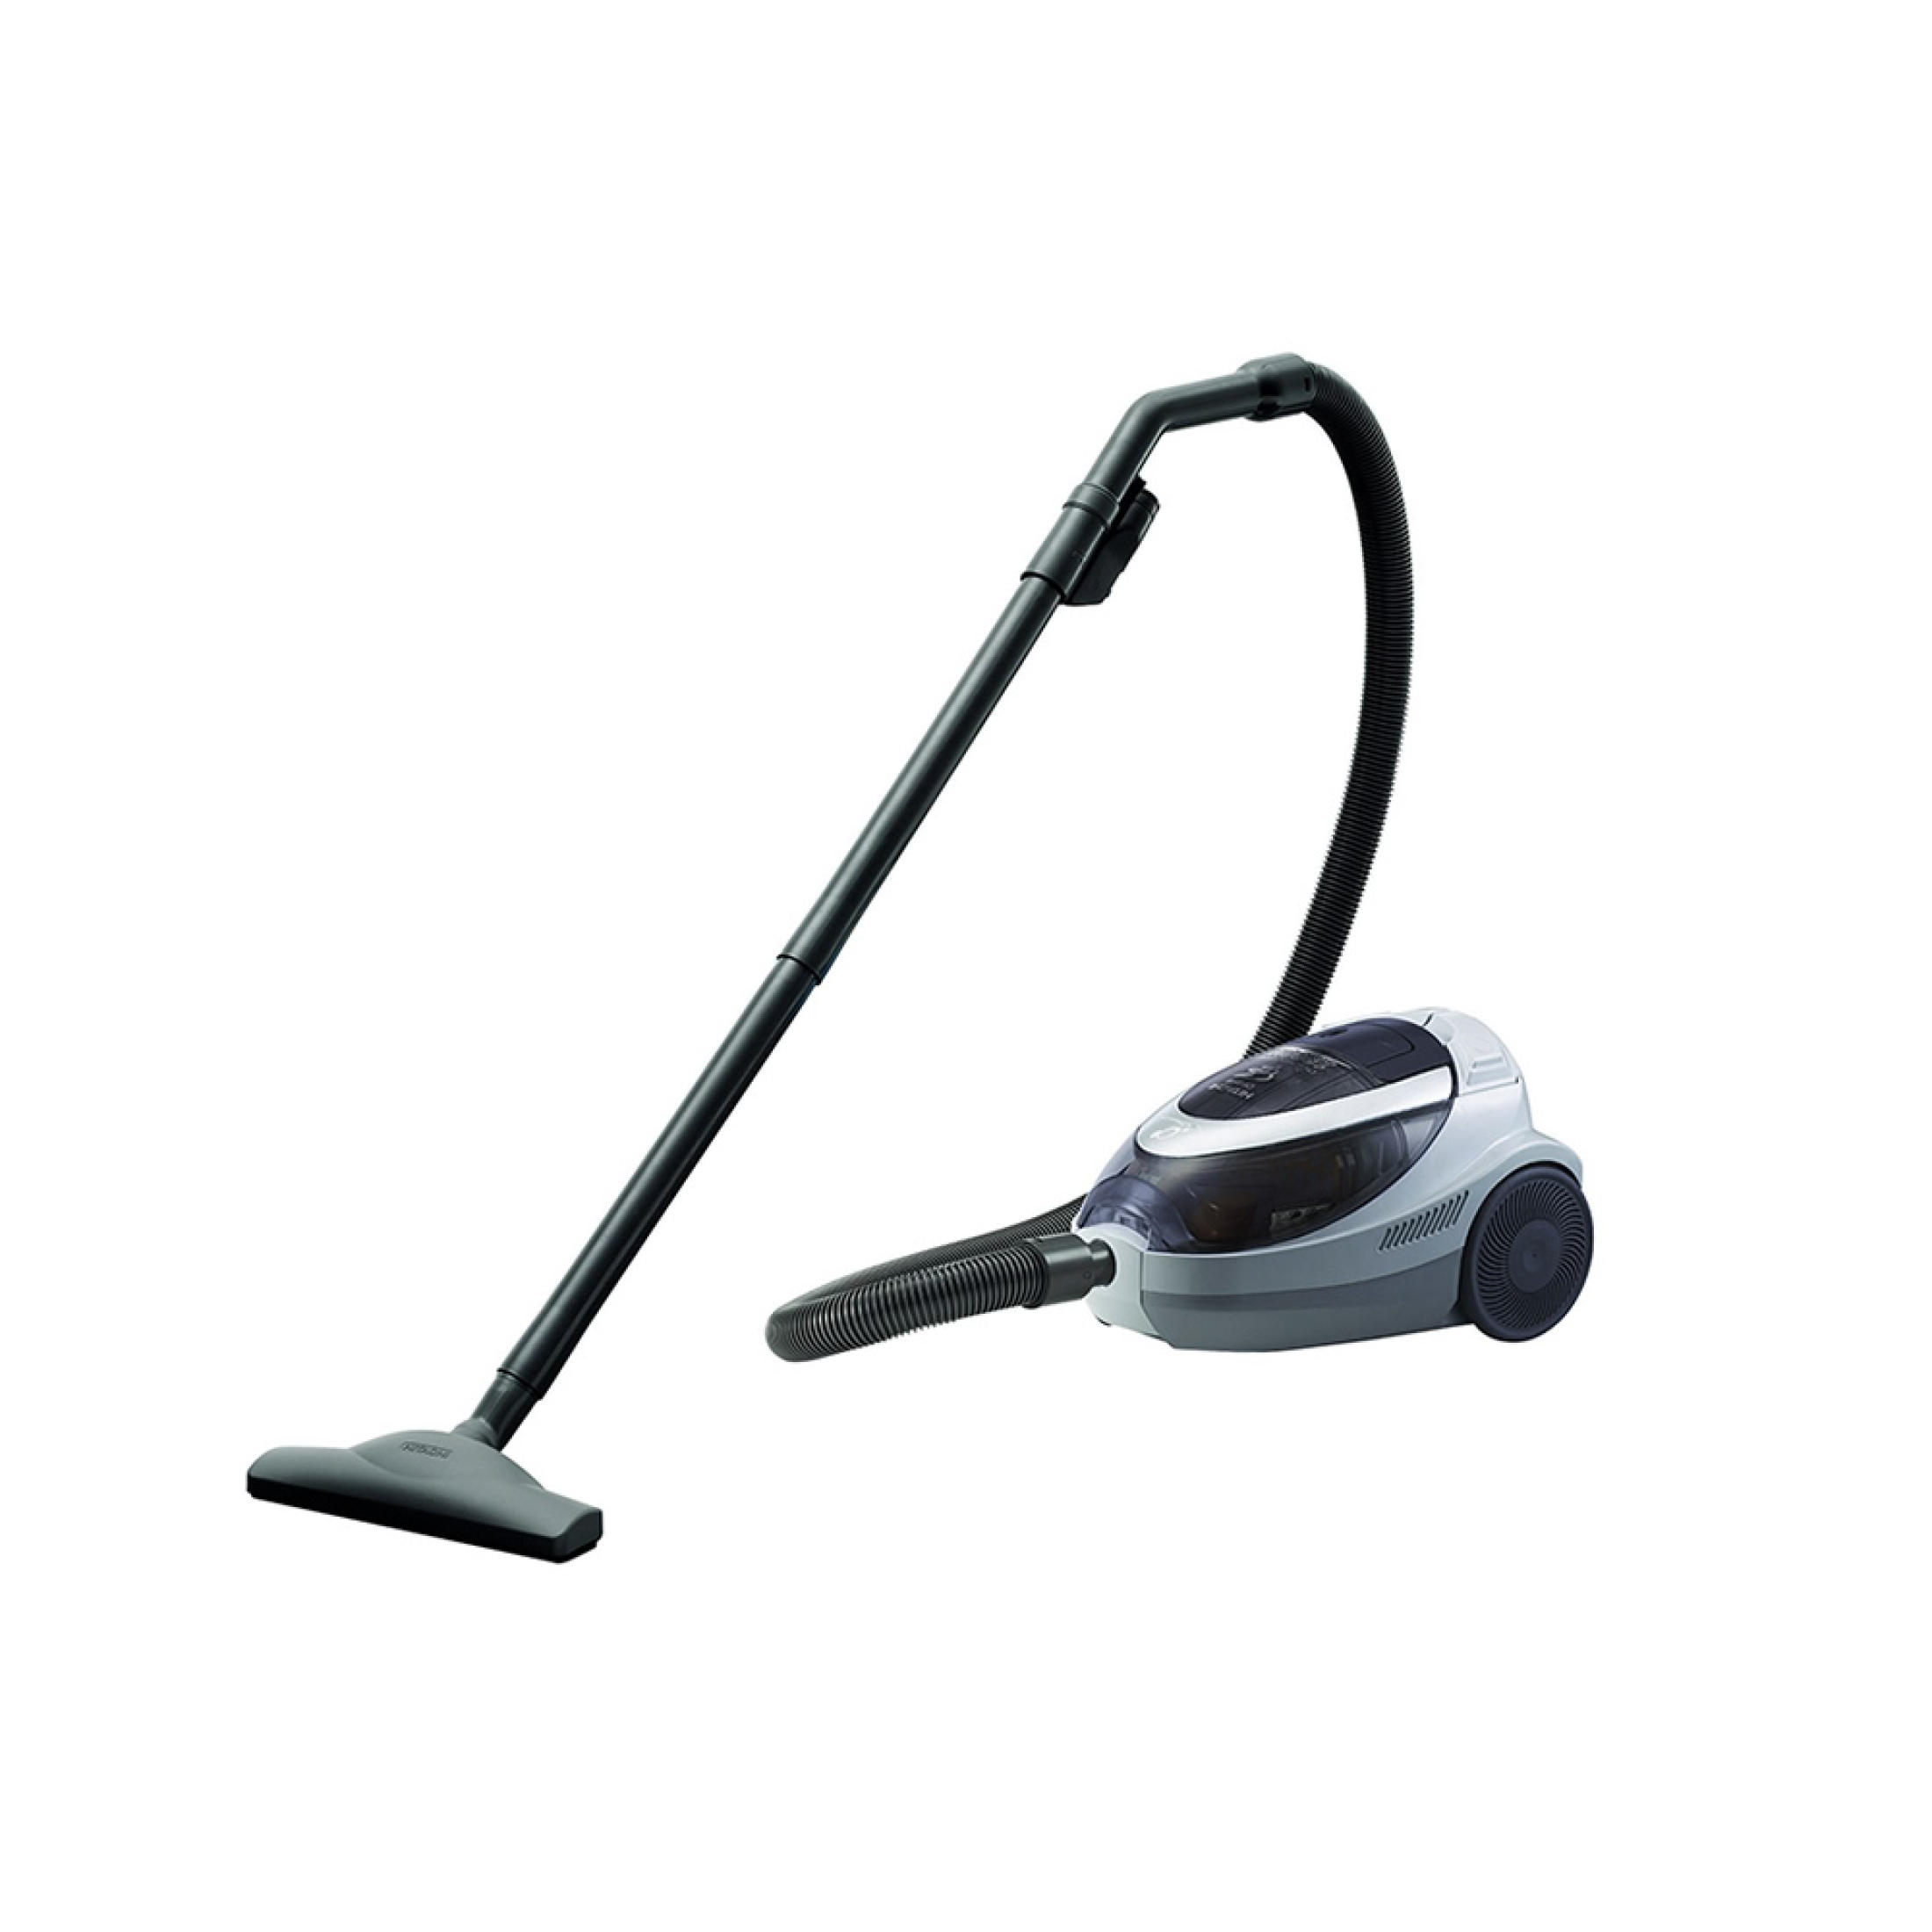 Hitachi Vacuum Cleaner Cvsh18 Gr